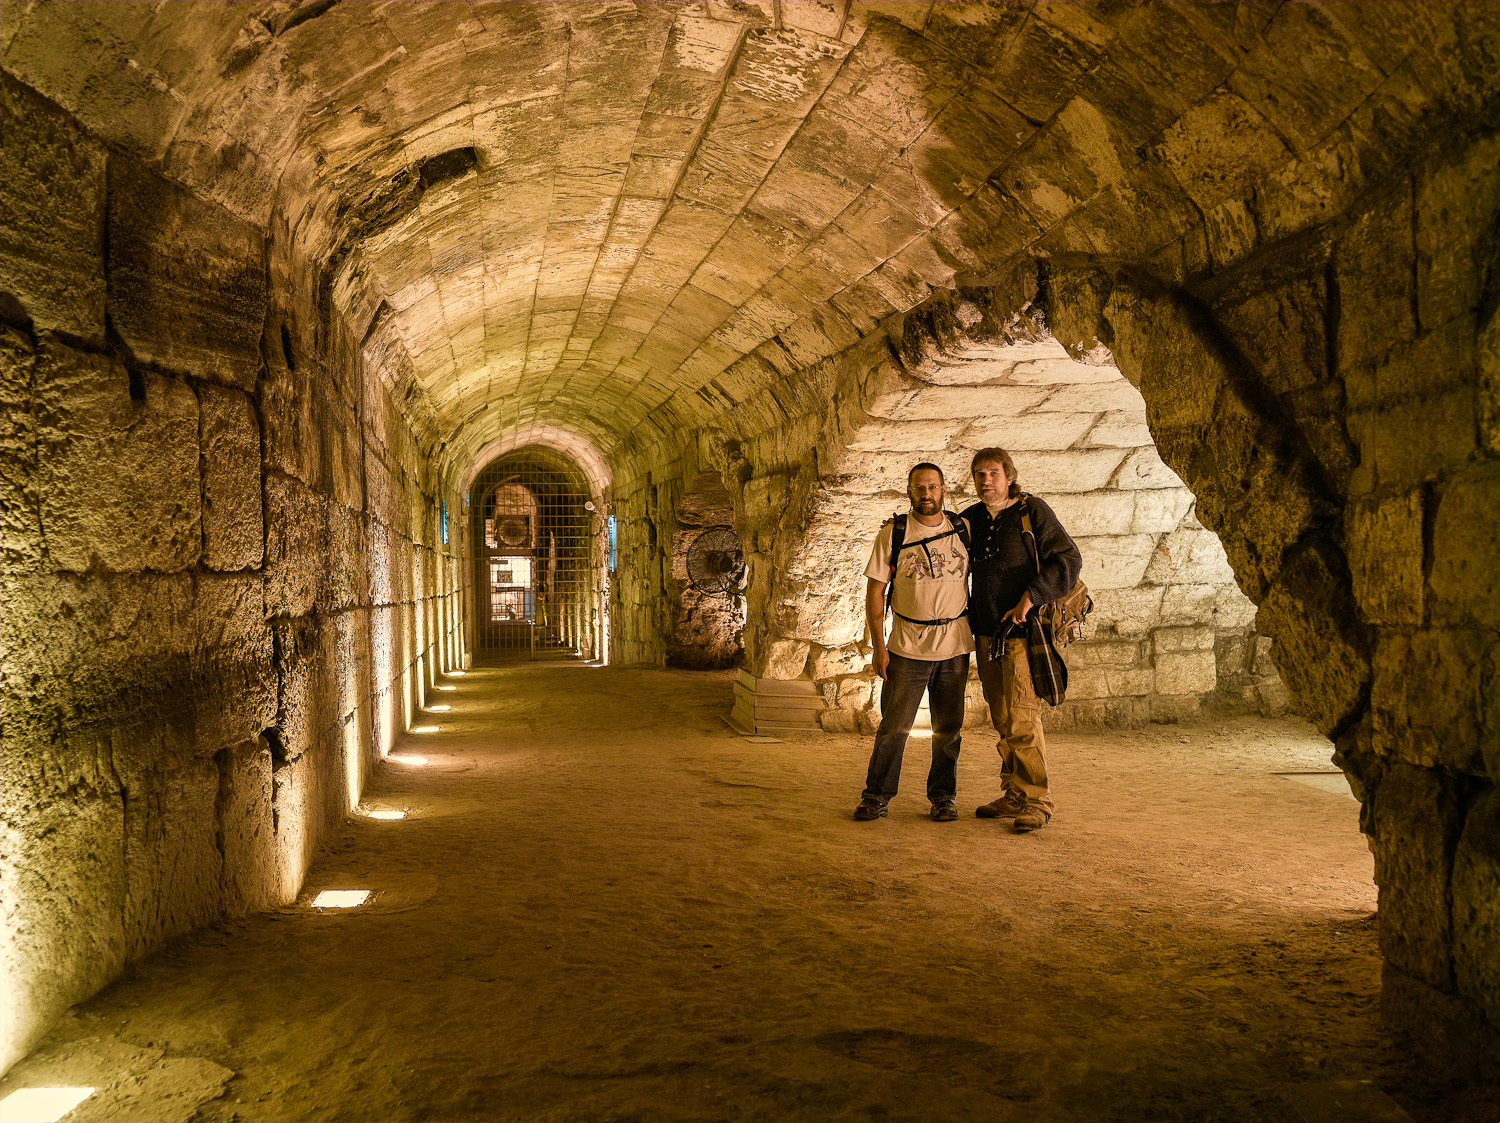 Brothers, David and Leon in the Kotel Tunnels - Jerusalem, 2005